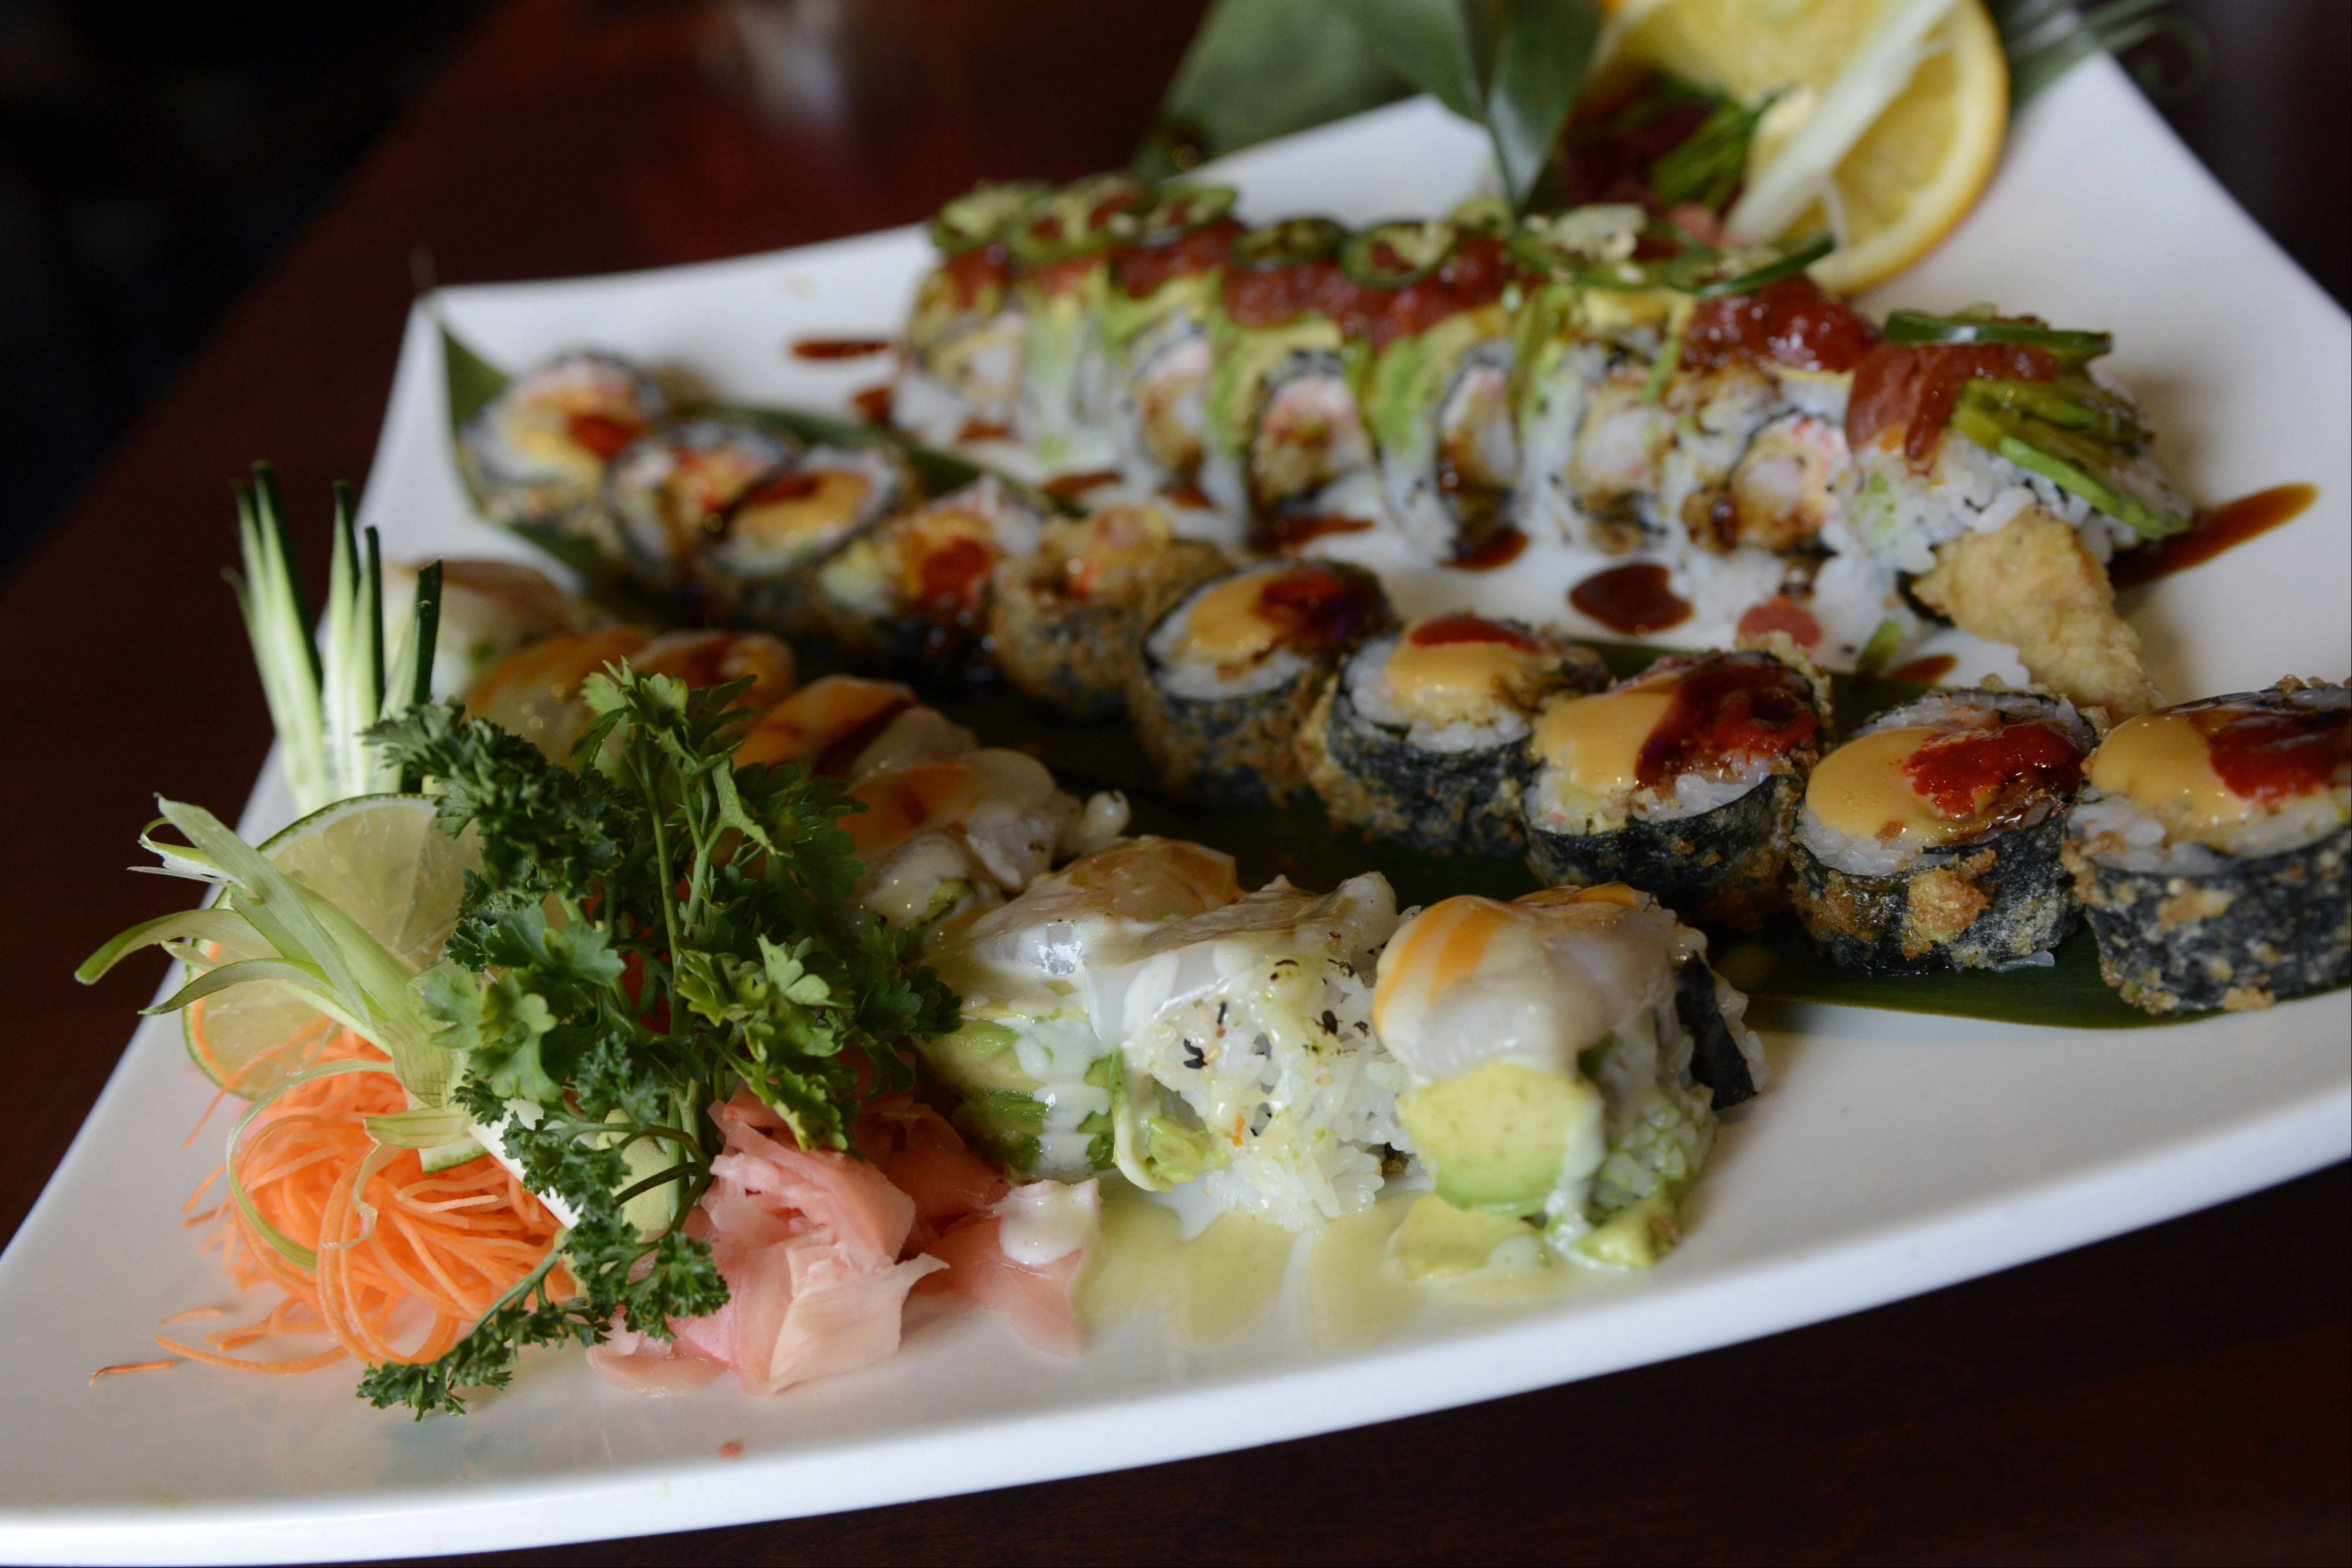 J-roll, St. Charles and Inky sushi, served at Wok'n Fire, South Barrington.